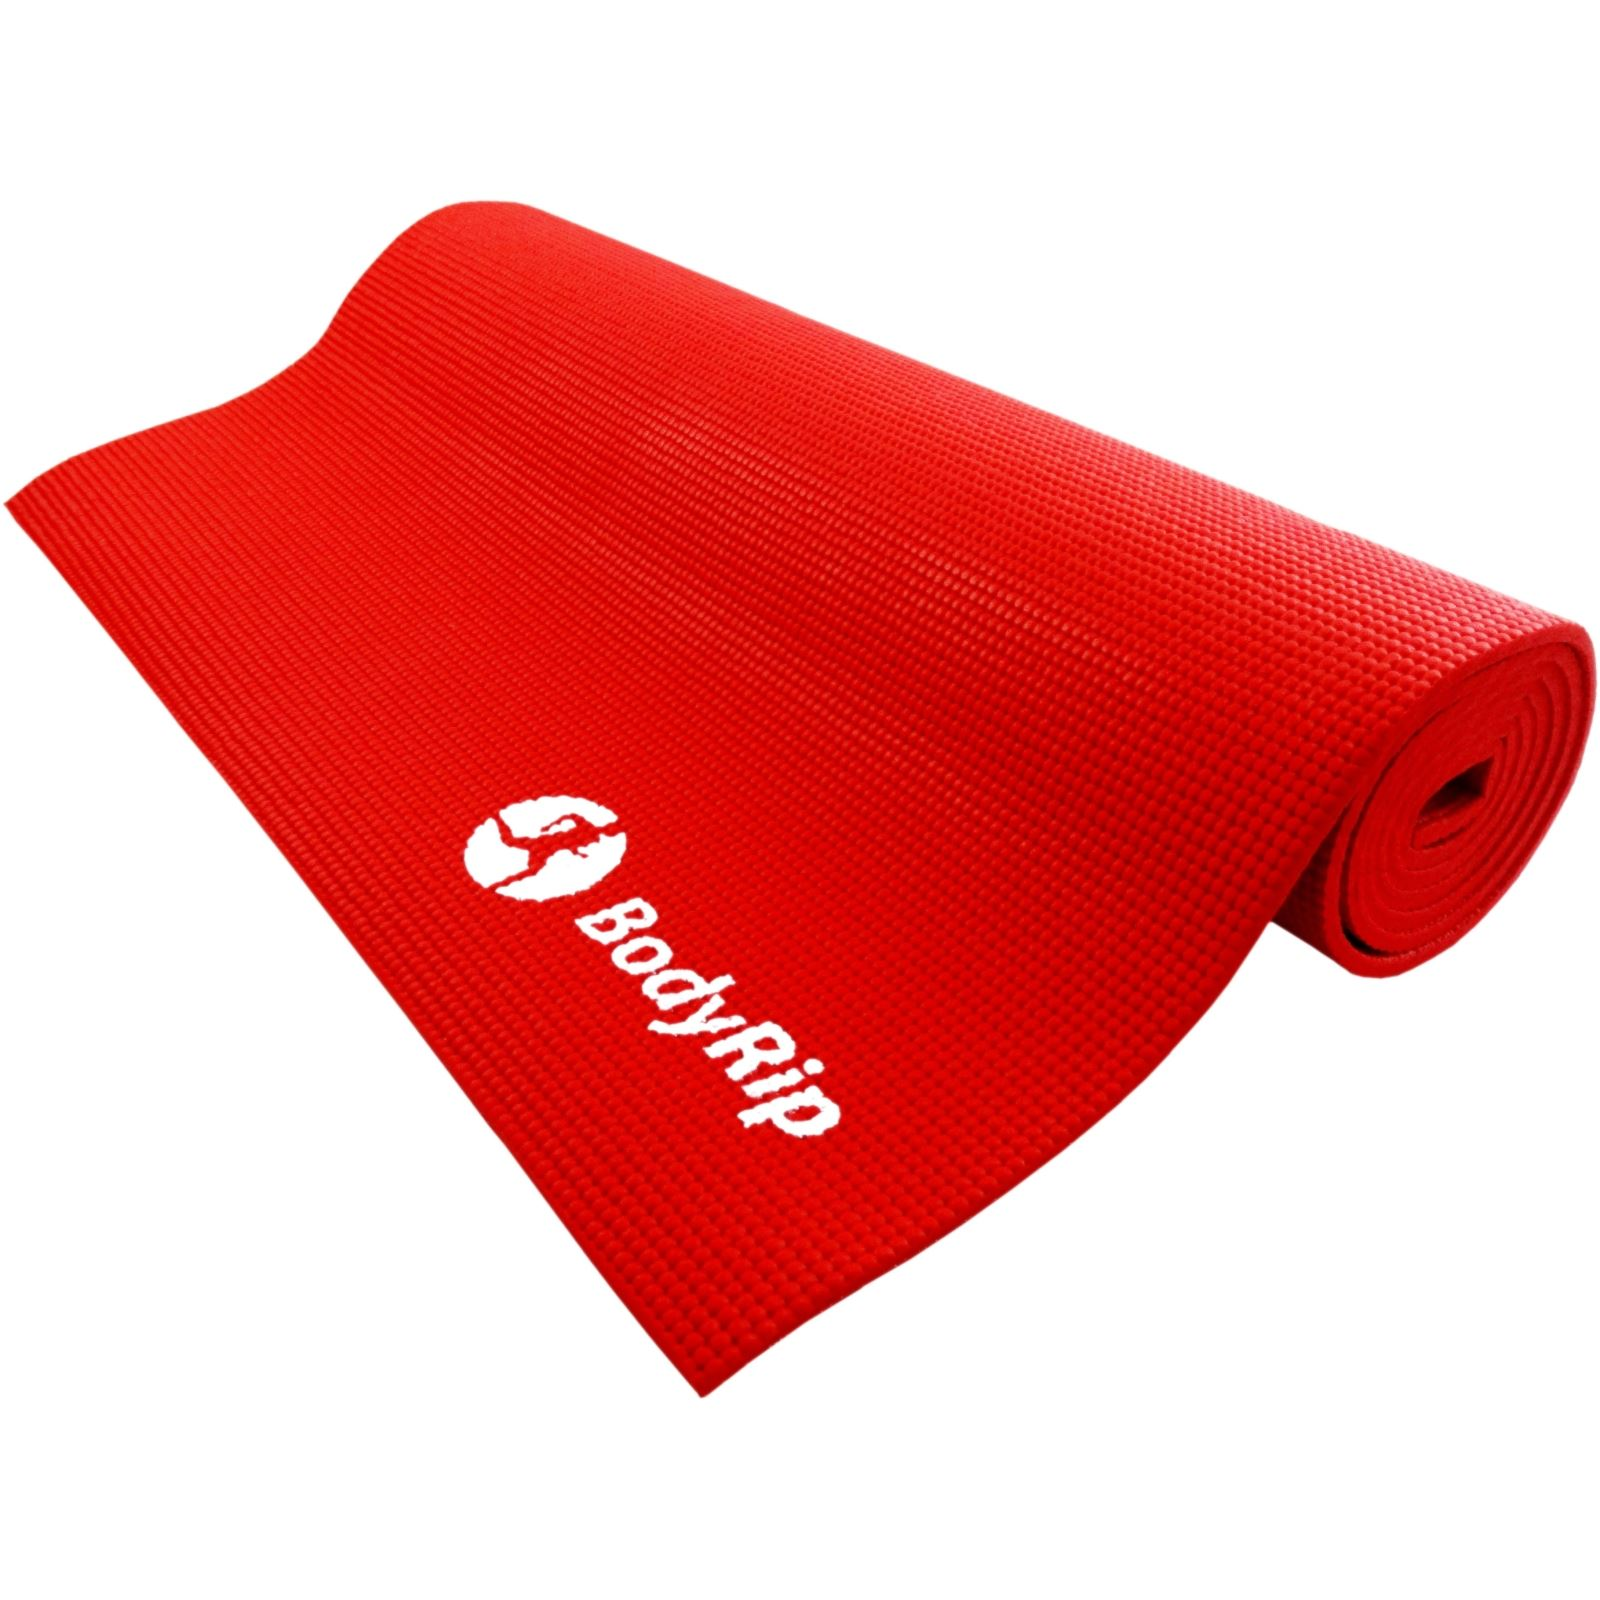 pilates mat gymnastics fitness yoga exercise accessories workout gymnastic diy gym mats itm